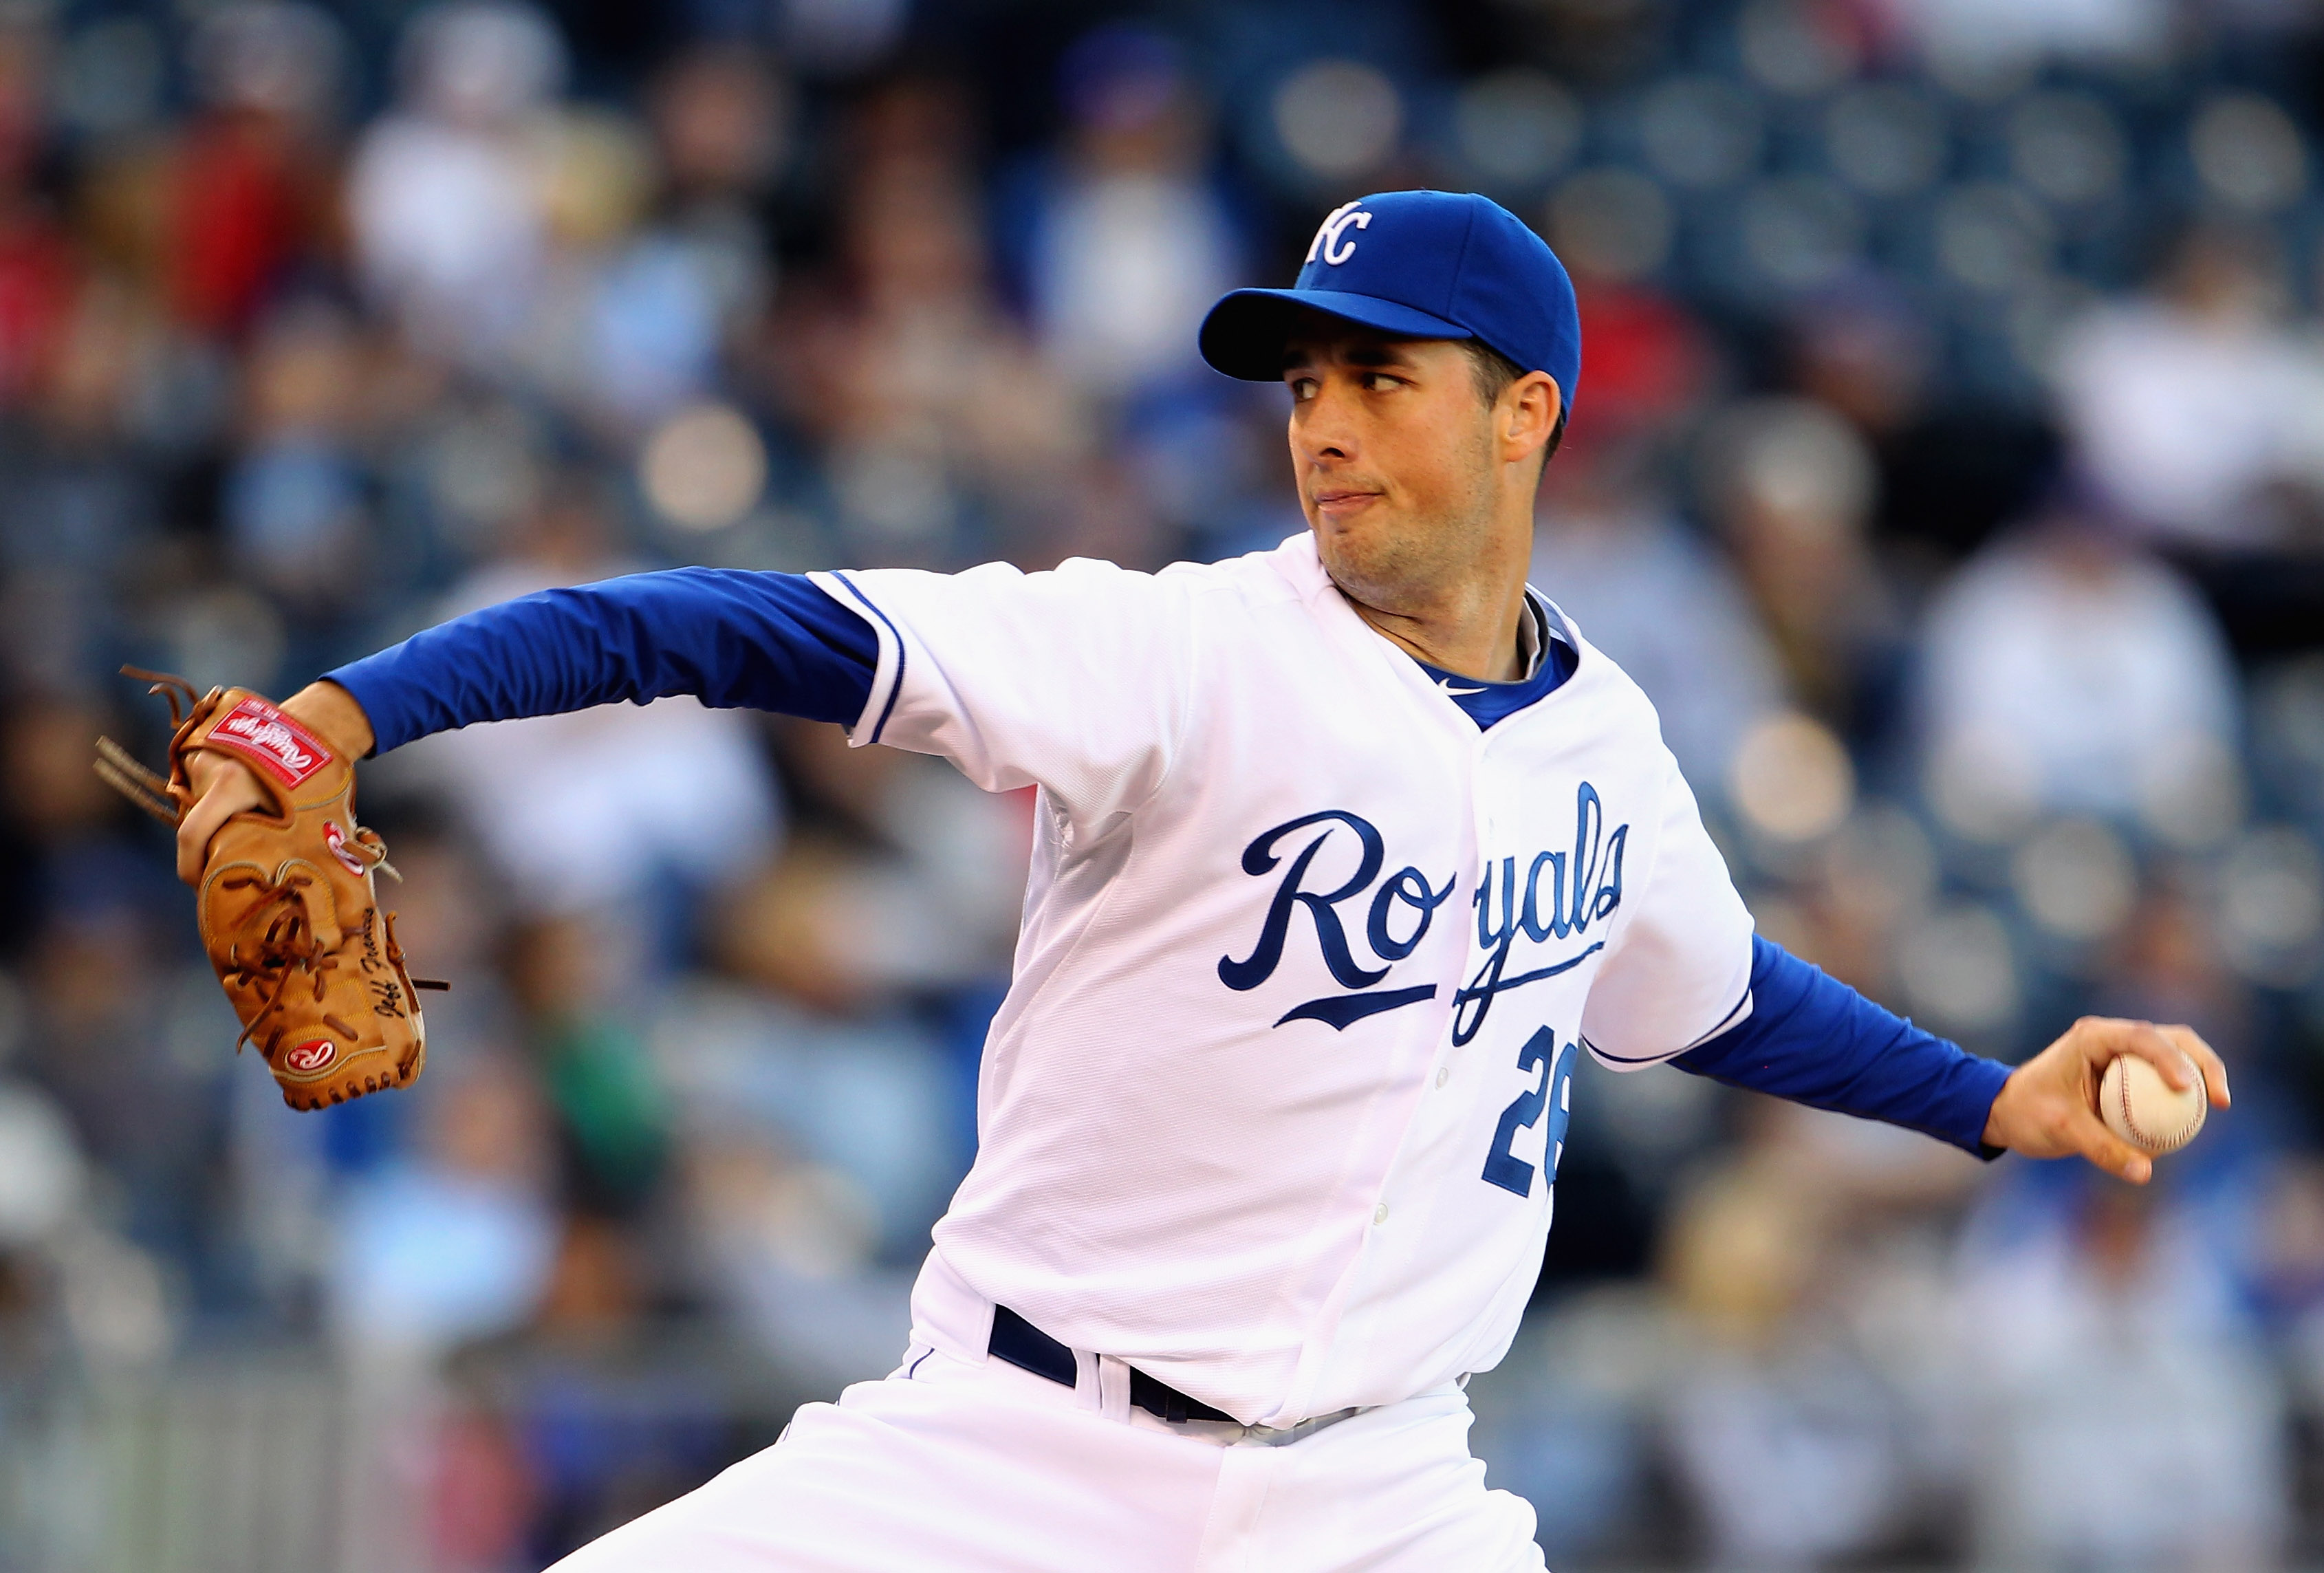 KANSAS CITY, MO - MAY 03:  Starting pitcher Jeff Francis #26 of the Kansas City Royals pitches during the game against the Baltimore Orioles on May 3, 2011 at Kauffman Stadium in Kansas City, Missouri.  (Photo by Jamie Squire/Getty Images)